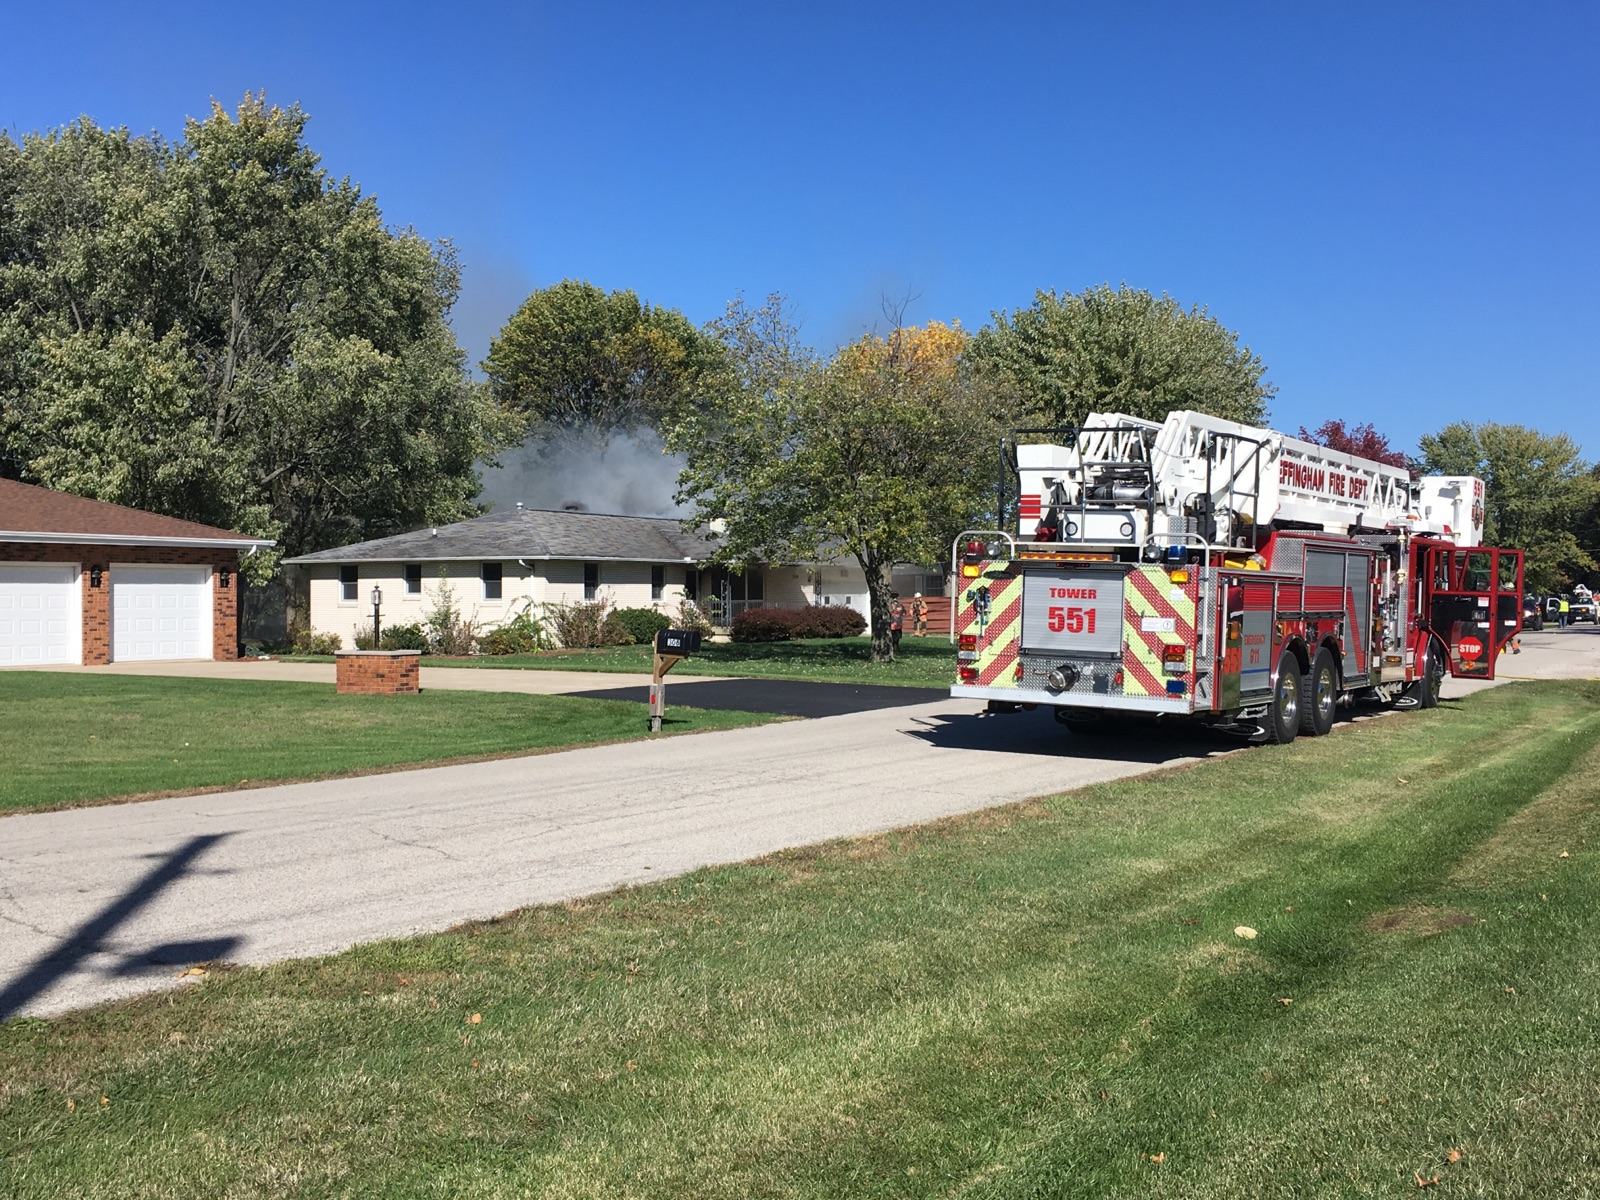 House on Hawthorne Drive Damaged by Fire Thursday